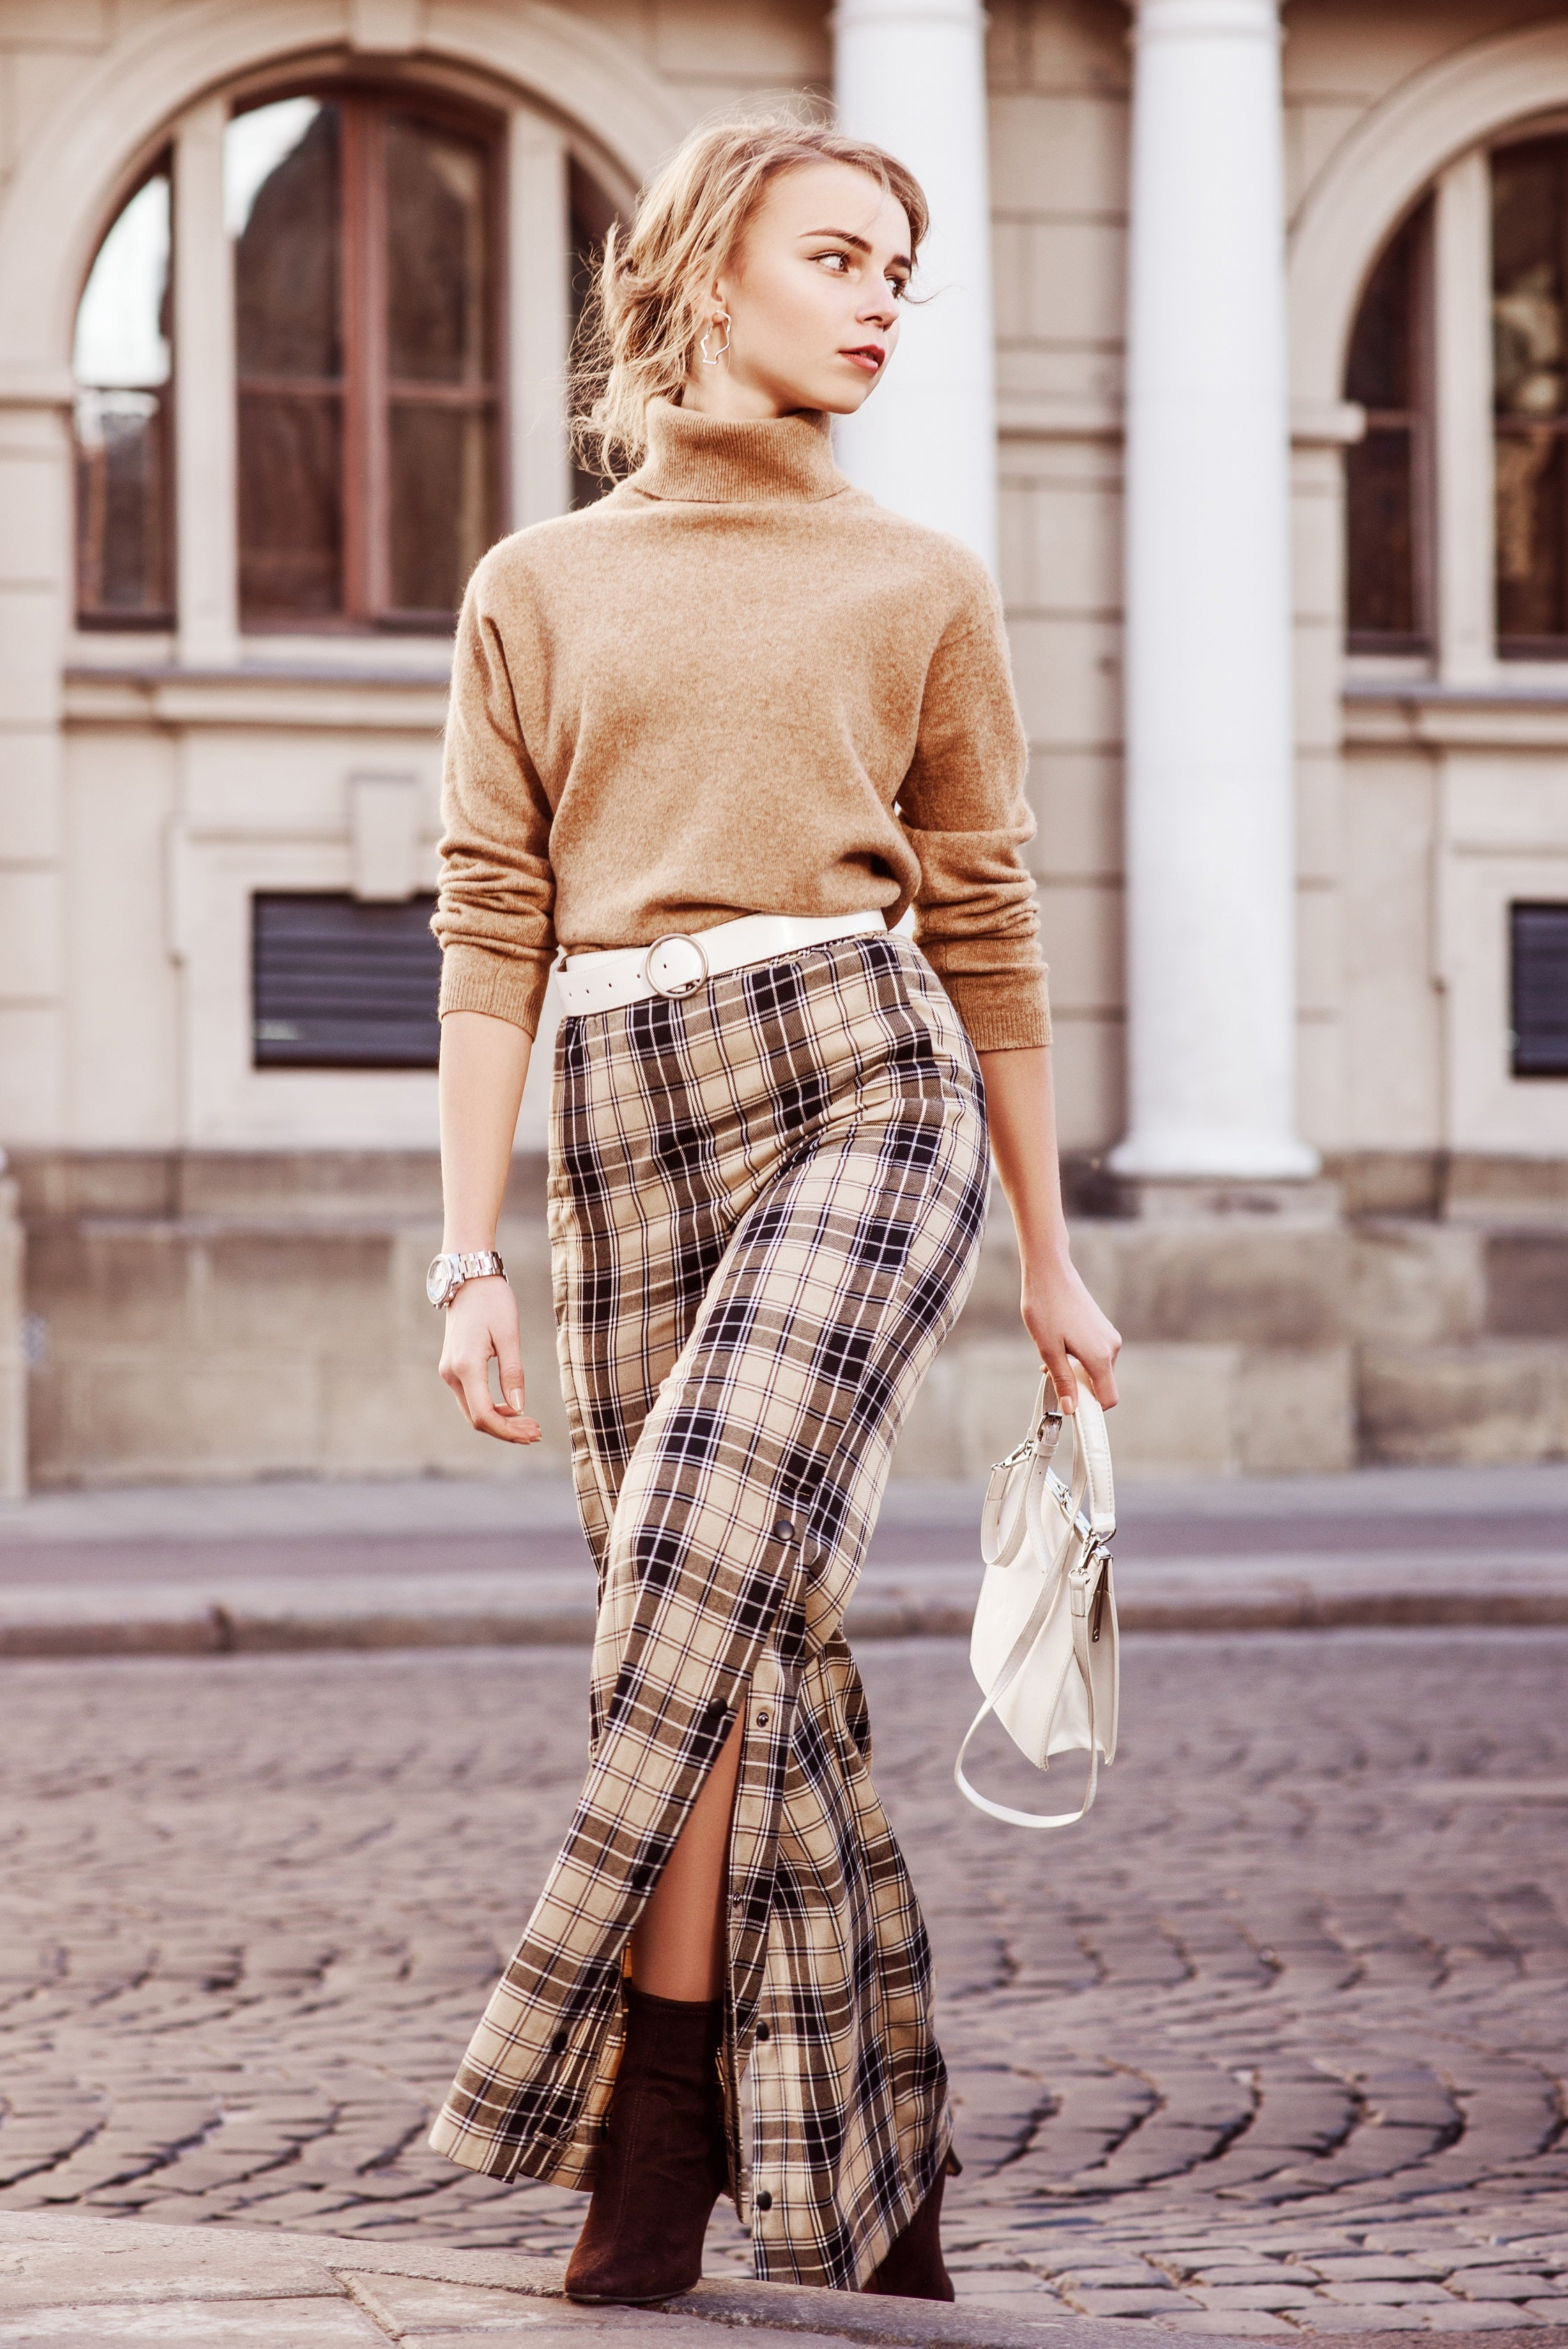 Beige plaid trouser with neutral colour knitted top